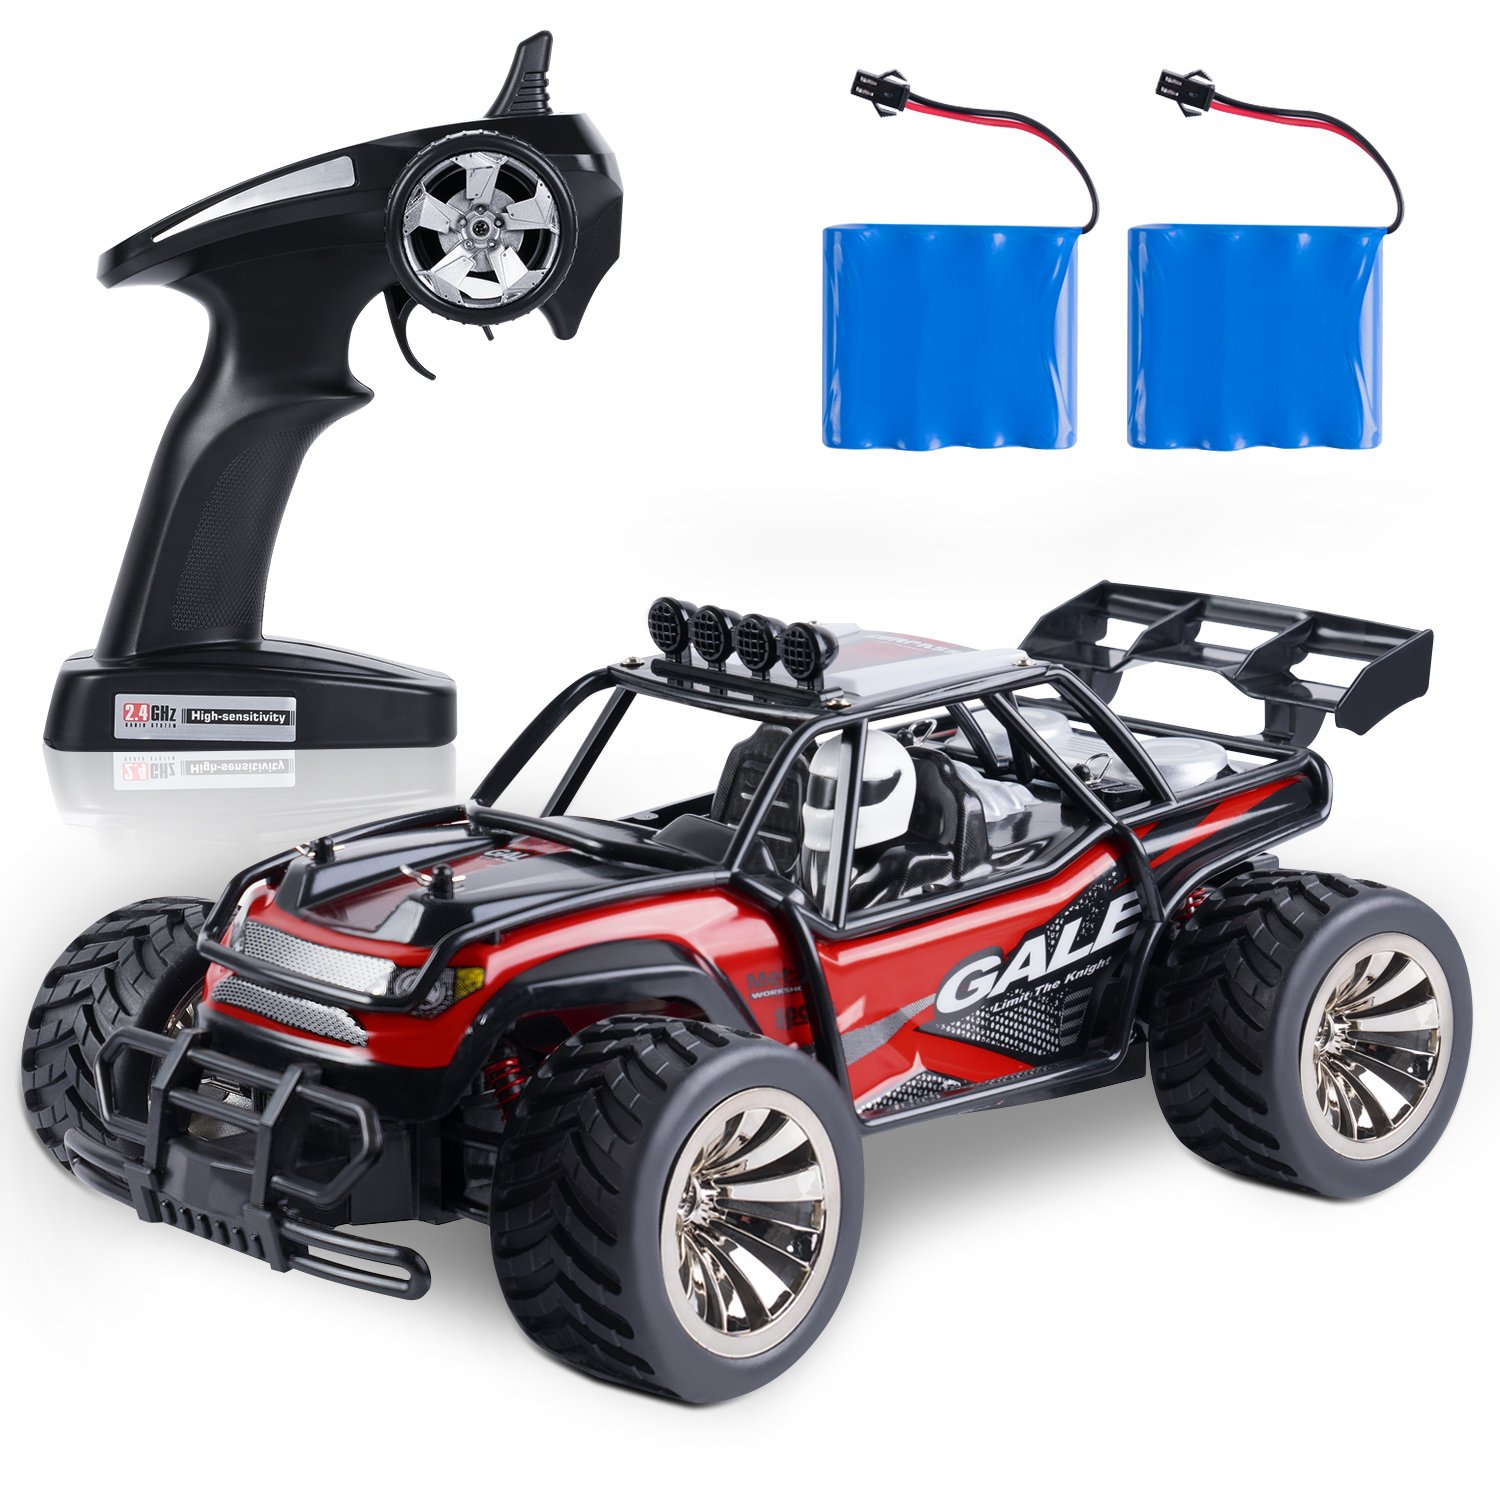 2.4Ghz 2WD Fast Race 5 Green Toch RC Car High Speed Car 1:20 Remote Control Racing Car for Boys Kids Crawler Buggy Hobby Electric Vehicle Car